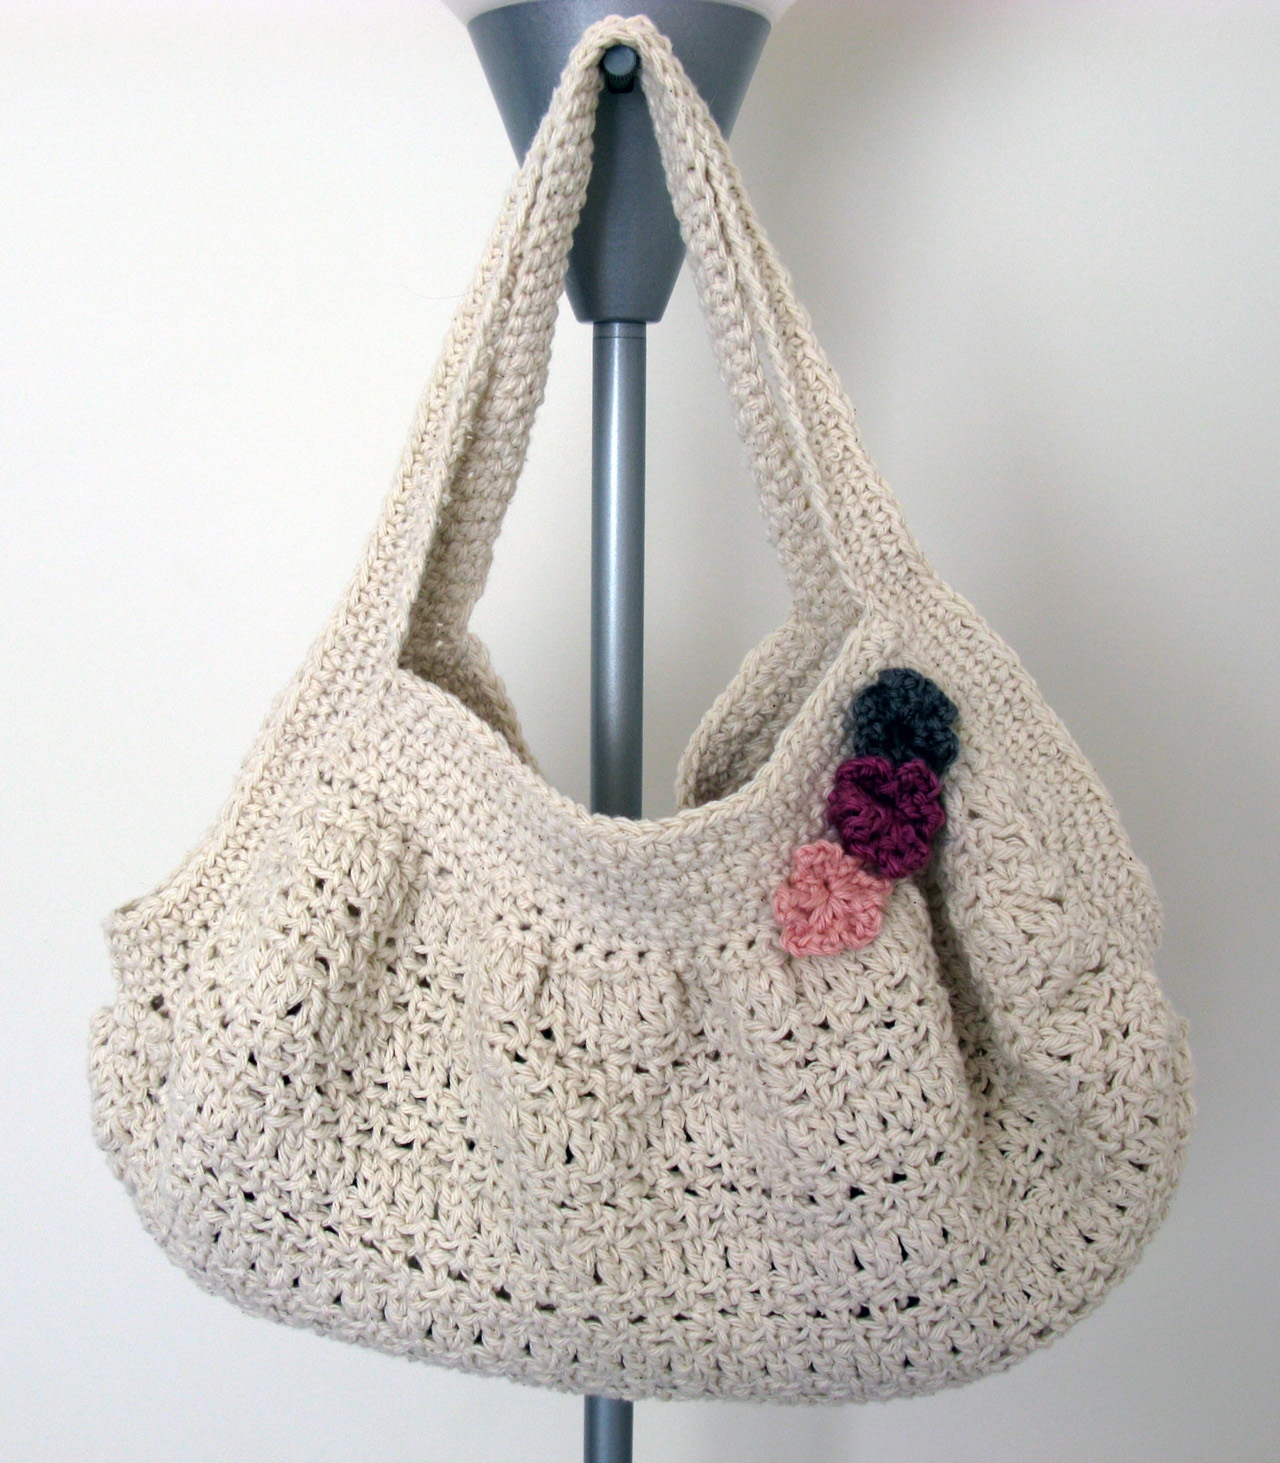 Japanese Crochet Bag : MyCreativeCard.com: Japanese Style Crochet Bag